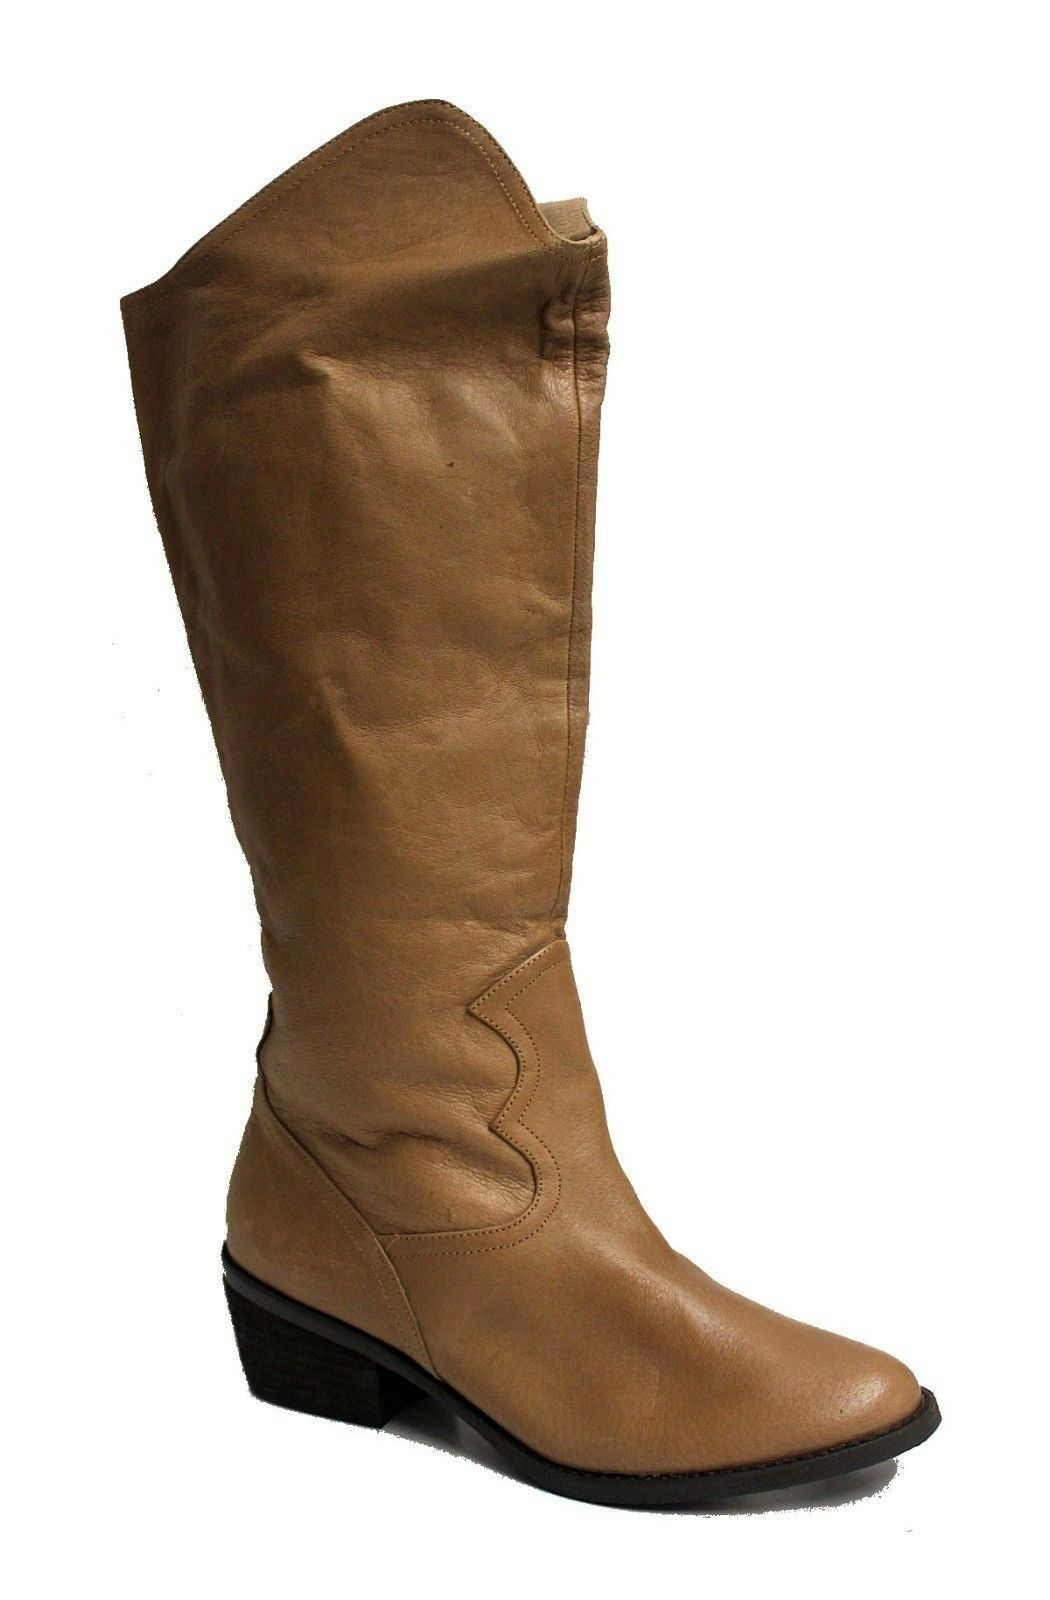 Naughty Monkey Women's Same-Note Boot US L6 R6.5 Mismatched Size Tan NOB